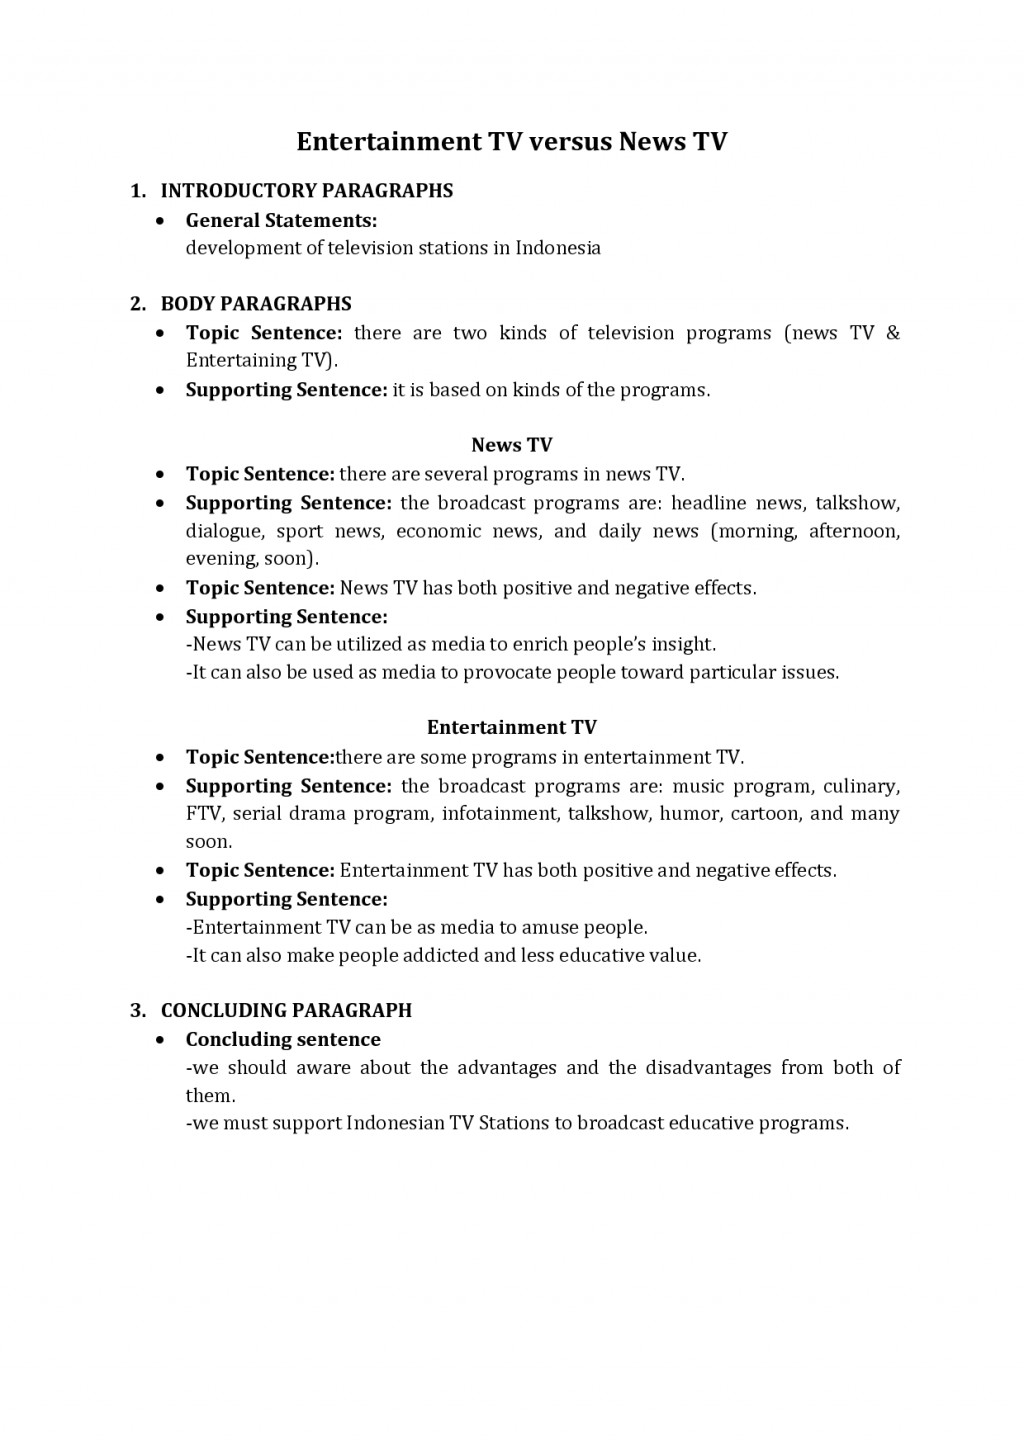 005 Fbunmxinib How To Write An Essay Outline Excellent Middle School A Research Paper Mla Format Large